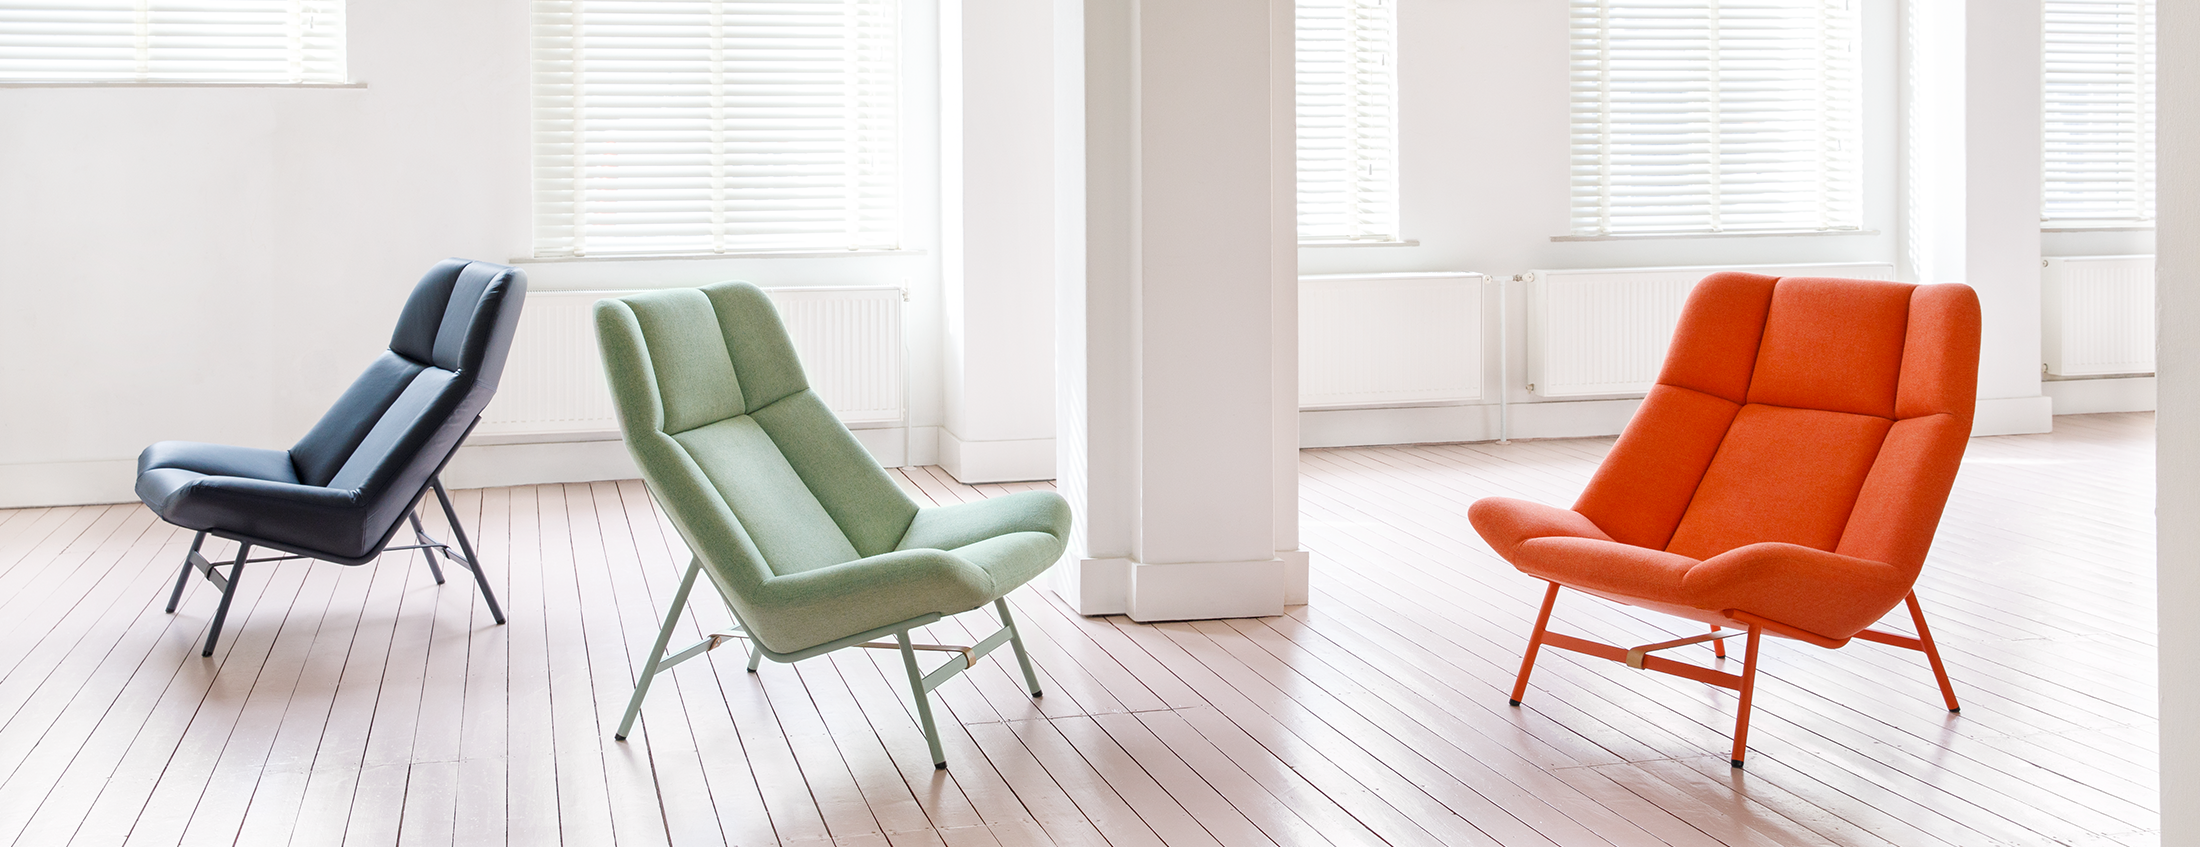 Introducing Soft Facet - a comfortable and inviting lounge armchair by Scholten & Baijings. Create your timeless and inspiring interior at home. Explore the Artifort collection.